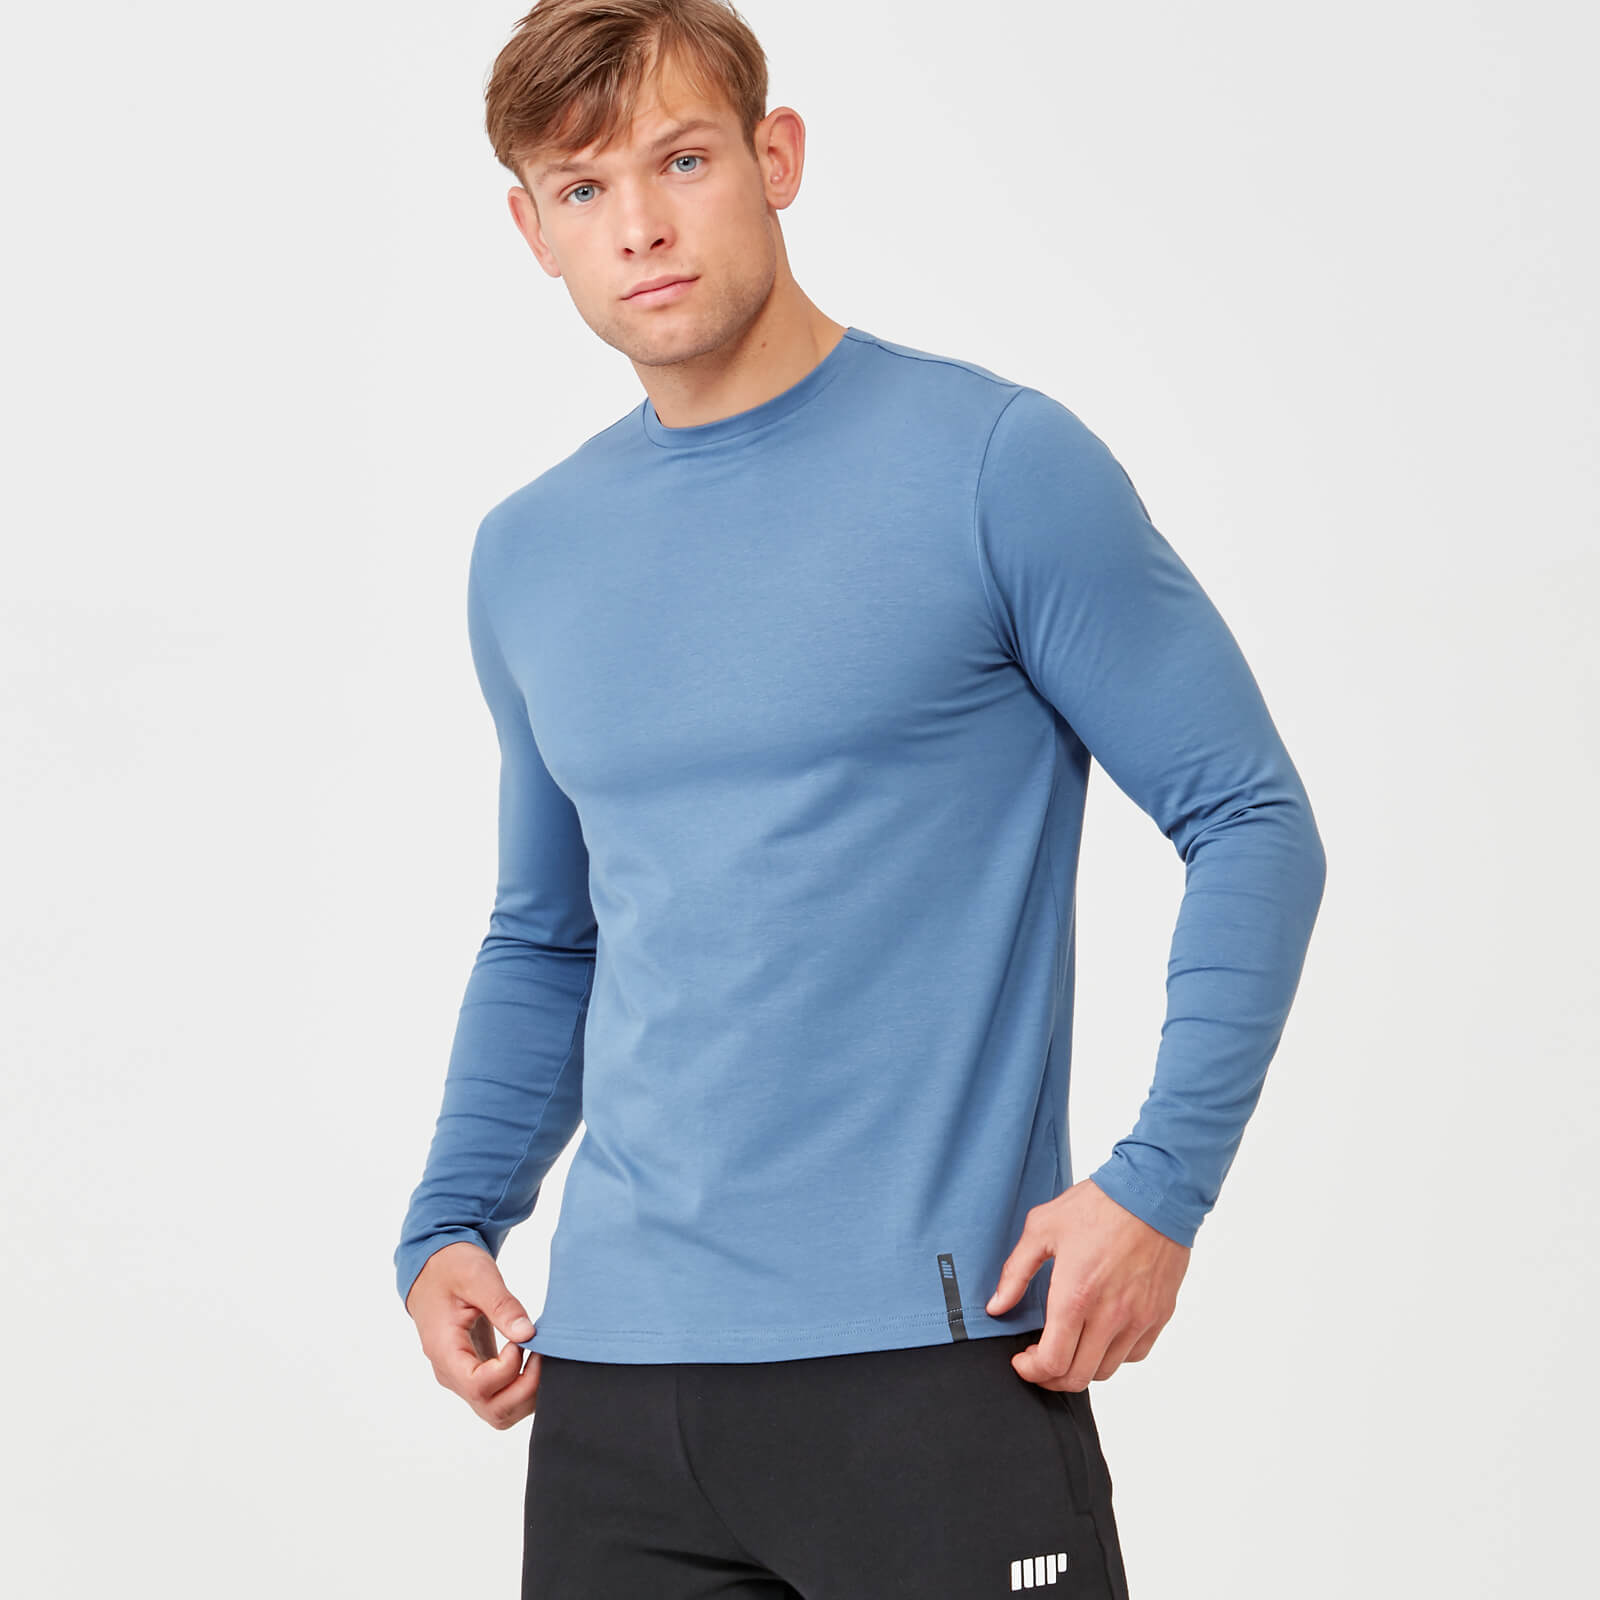 Myprotein Luxe Classic Long Sleeve Crew - Blue - S